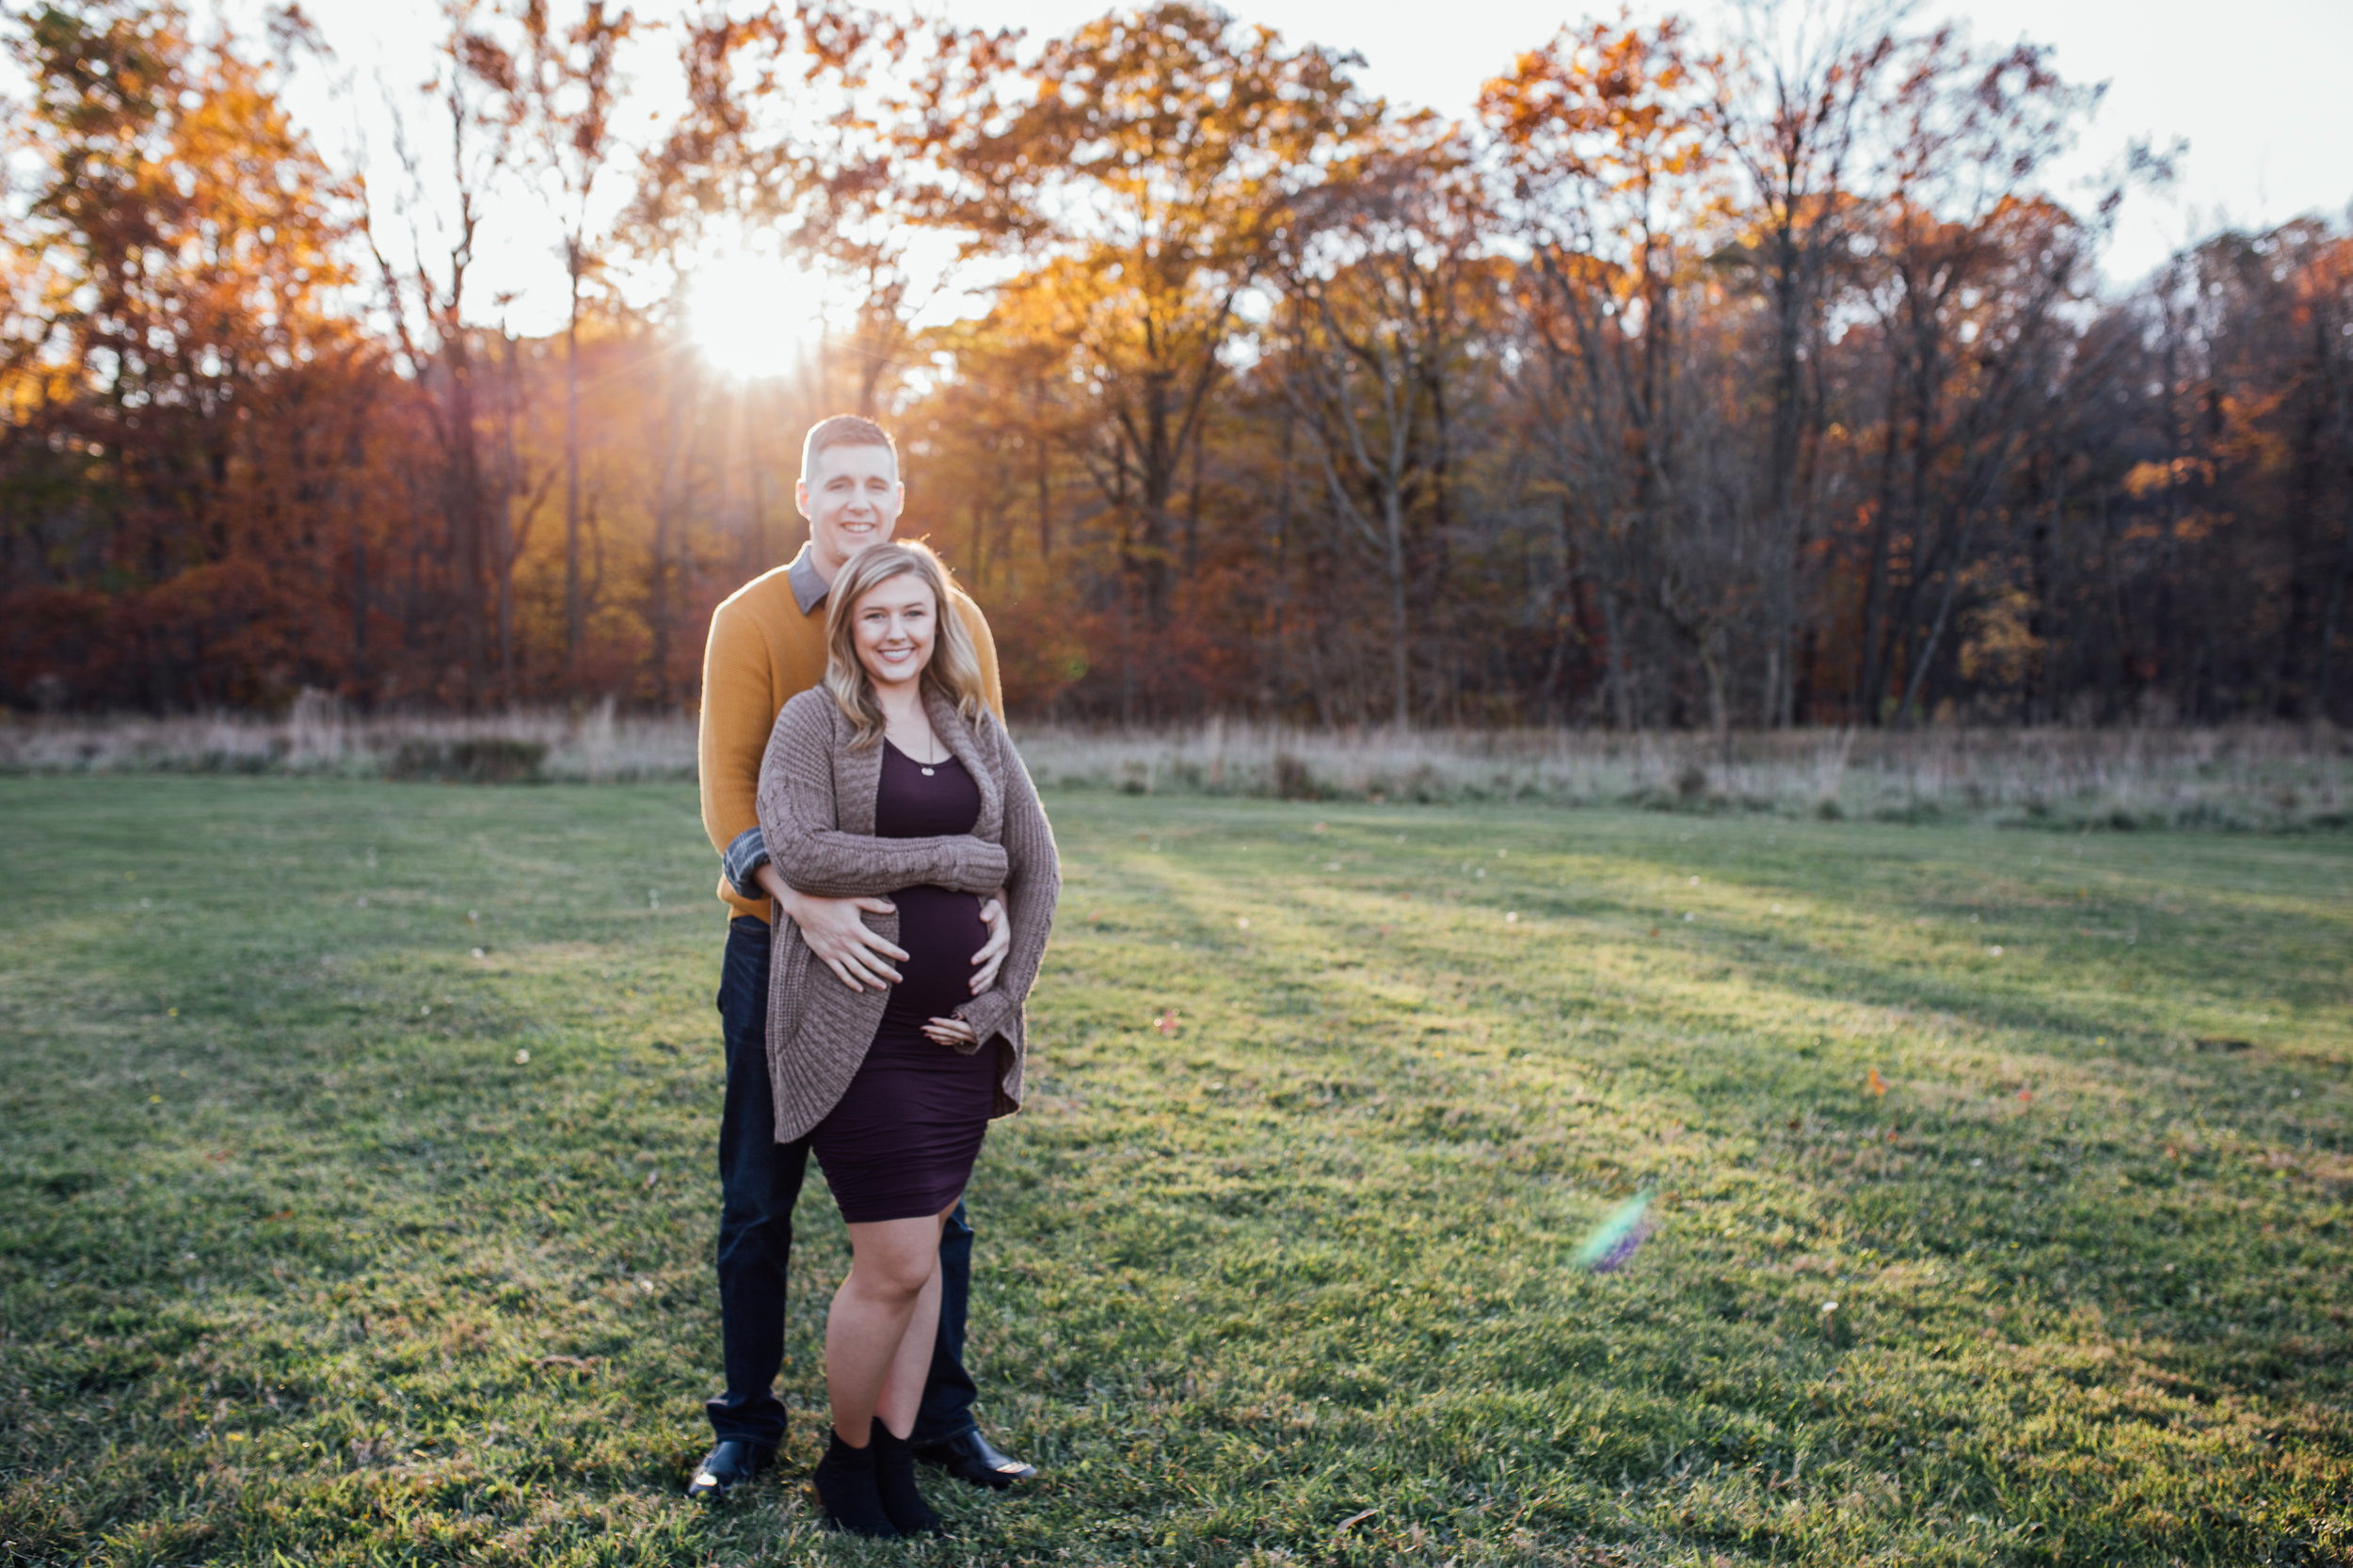 Carrie Hall Photography || Cleveland, Ohio Maternity Photographer Expertise.com